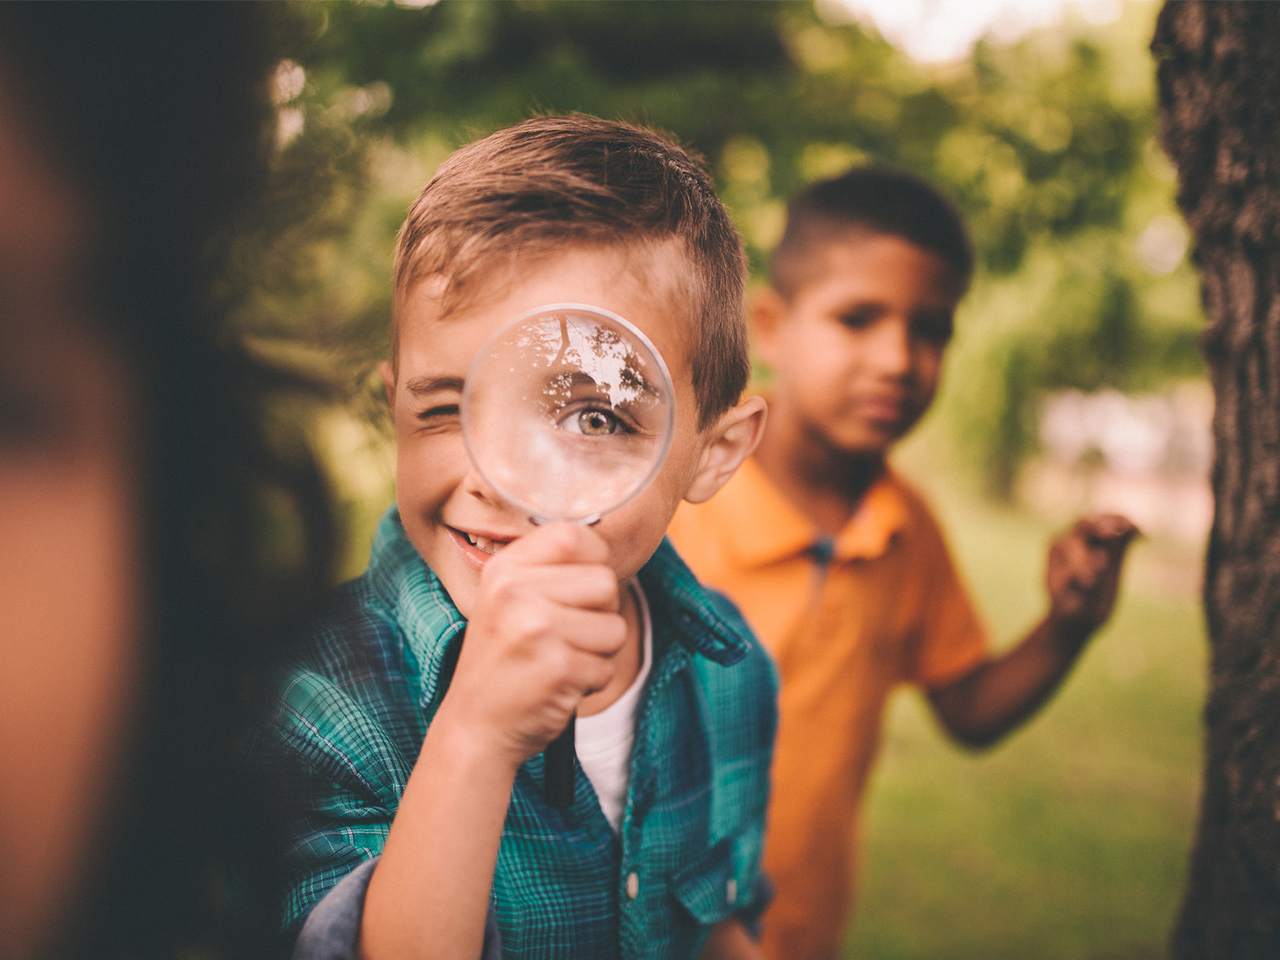 kid with magnifying glass and friend looking behind him